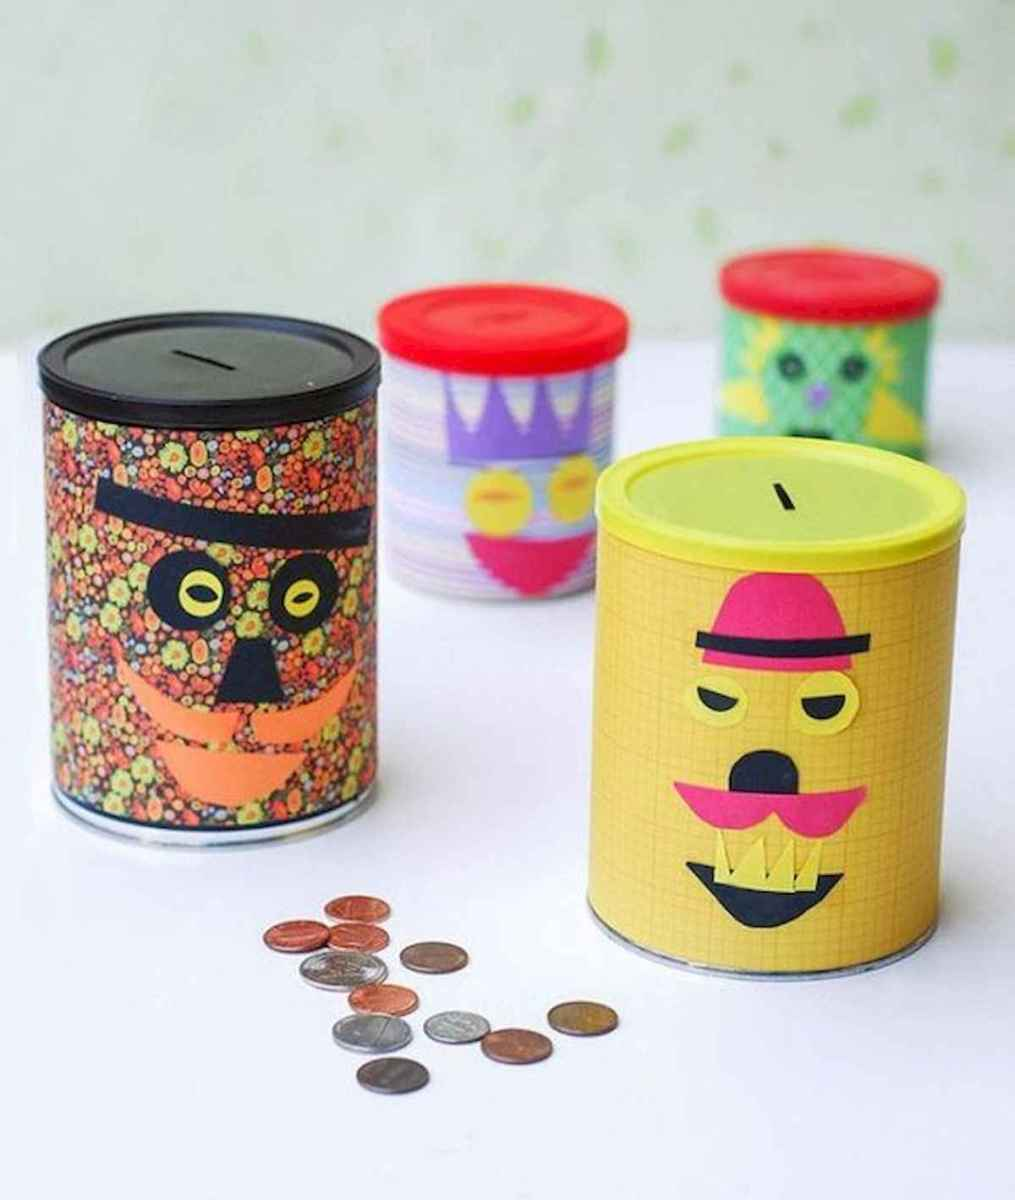 60 Fantastic DIY Projects Ideas For Kids (45)